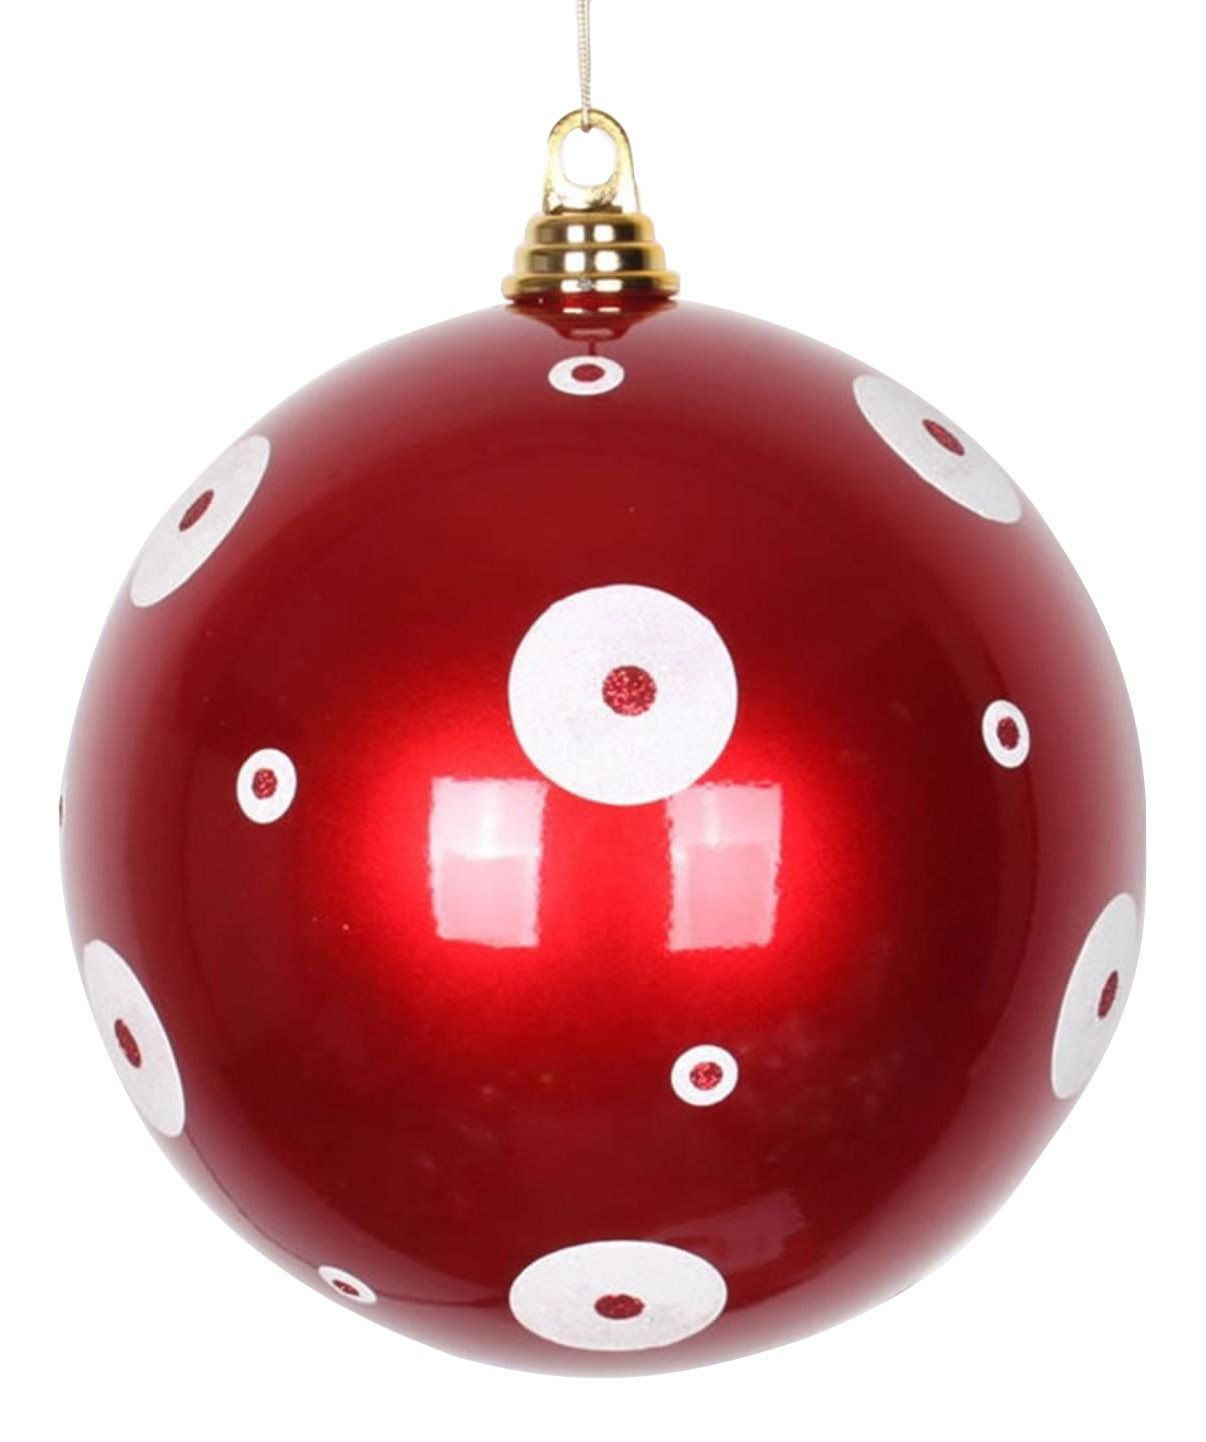 Vickerman Candy Apple Red with White Glitter Polka Dots Christmas Ball Ornaments 8'' (200mm)